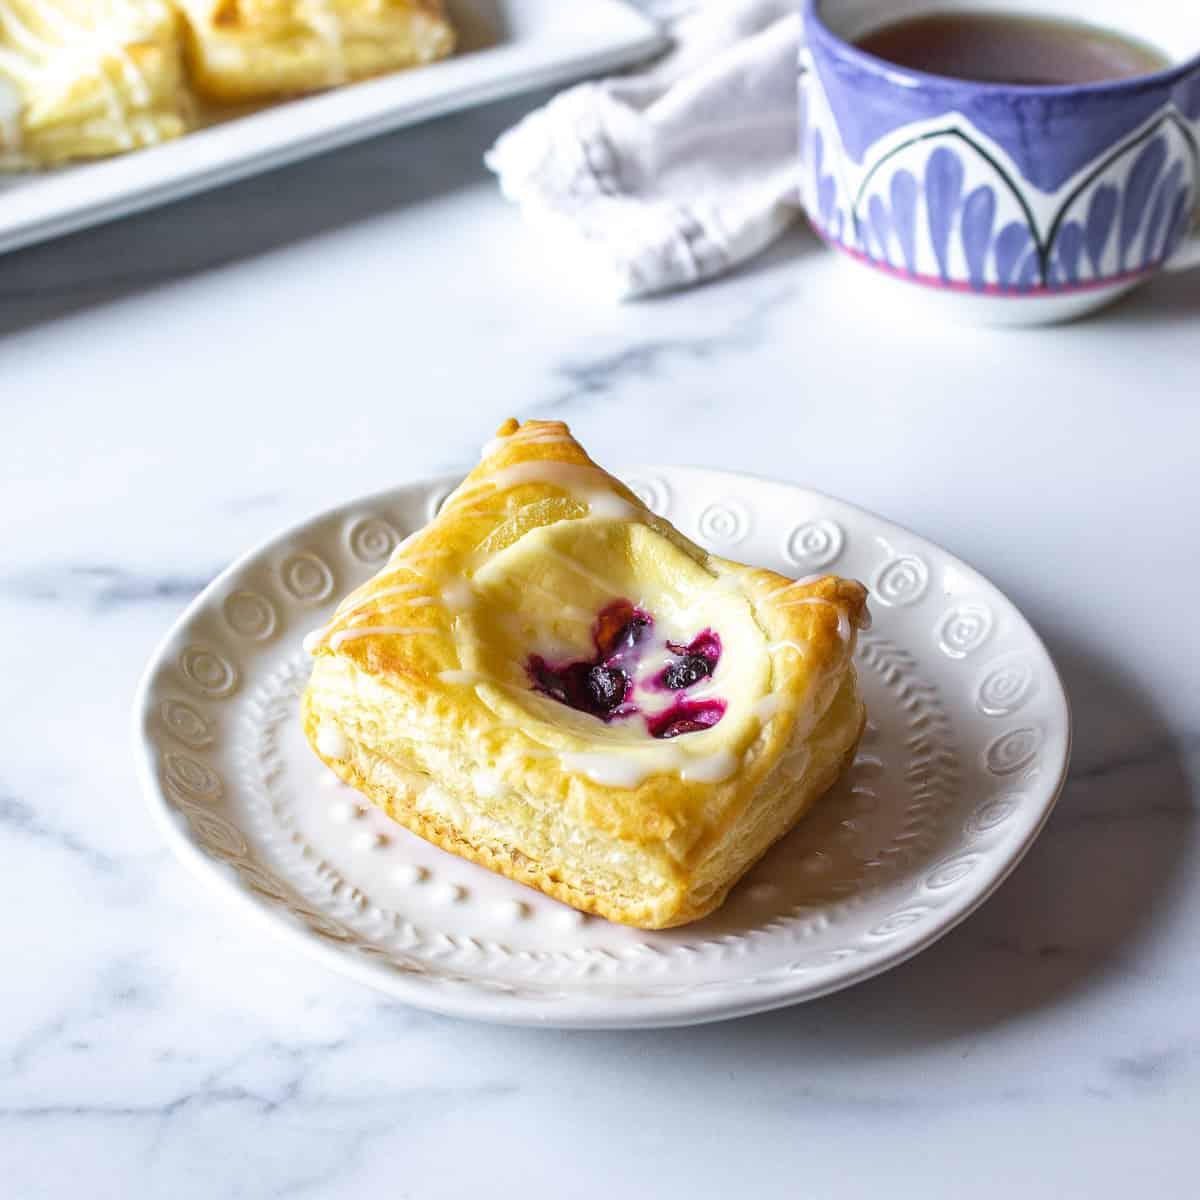 A danish filled with cream cheese and berries on a white plate.